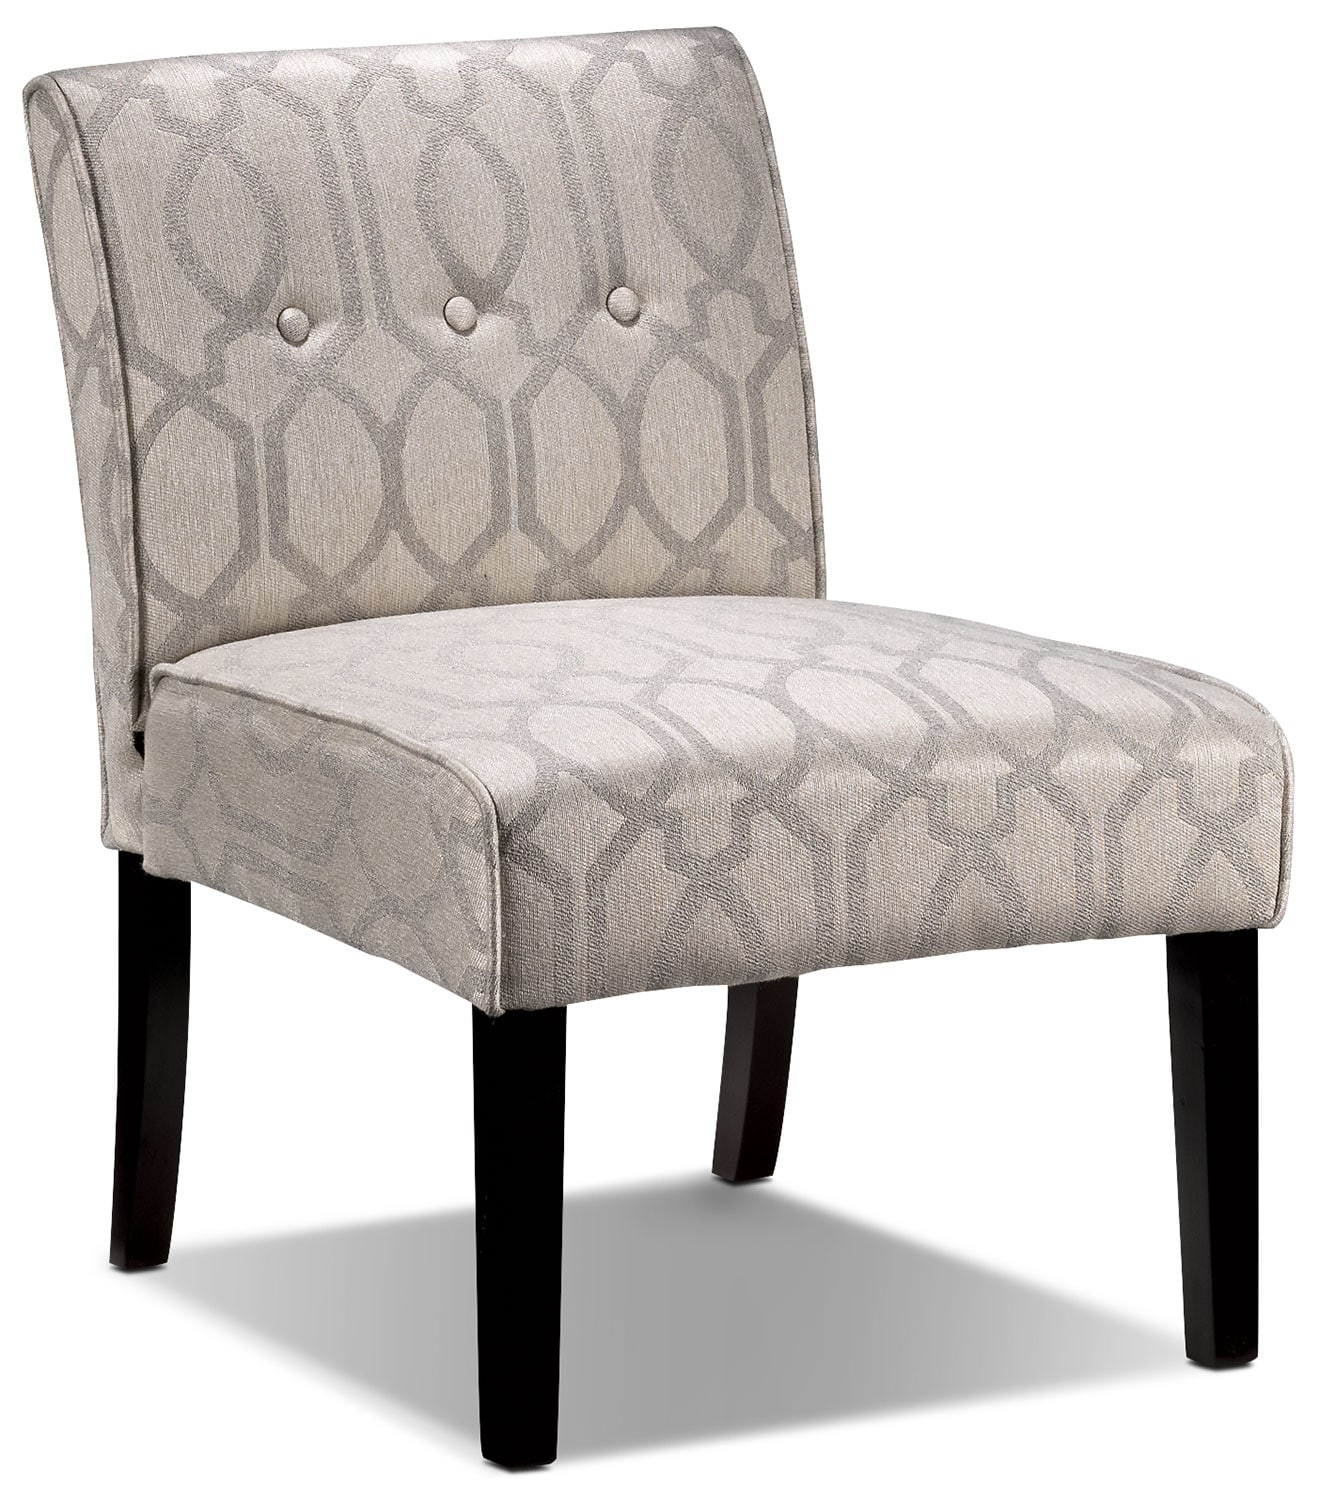 beige accent chairs stuffed animal for toddlers candace chair leon 39s